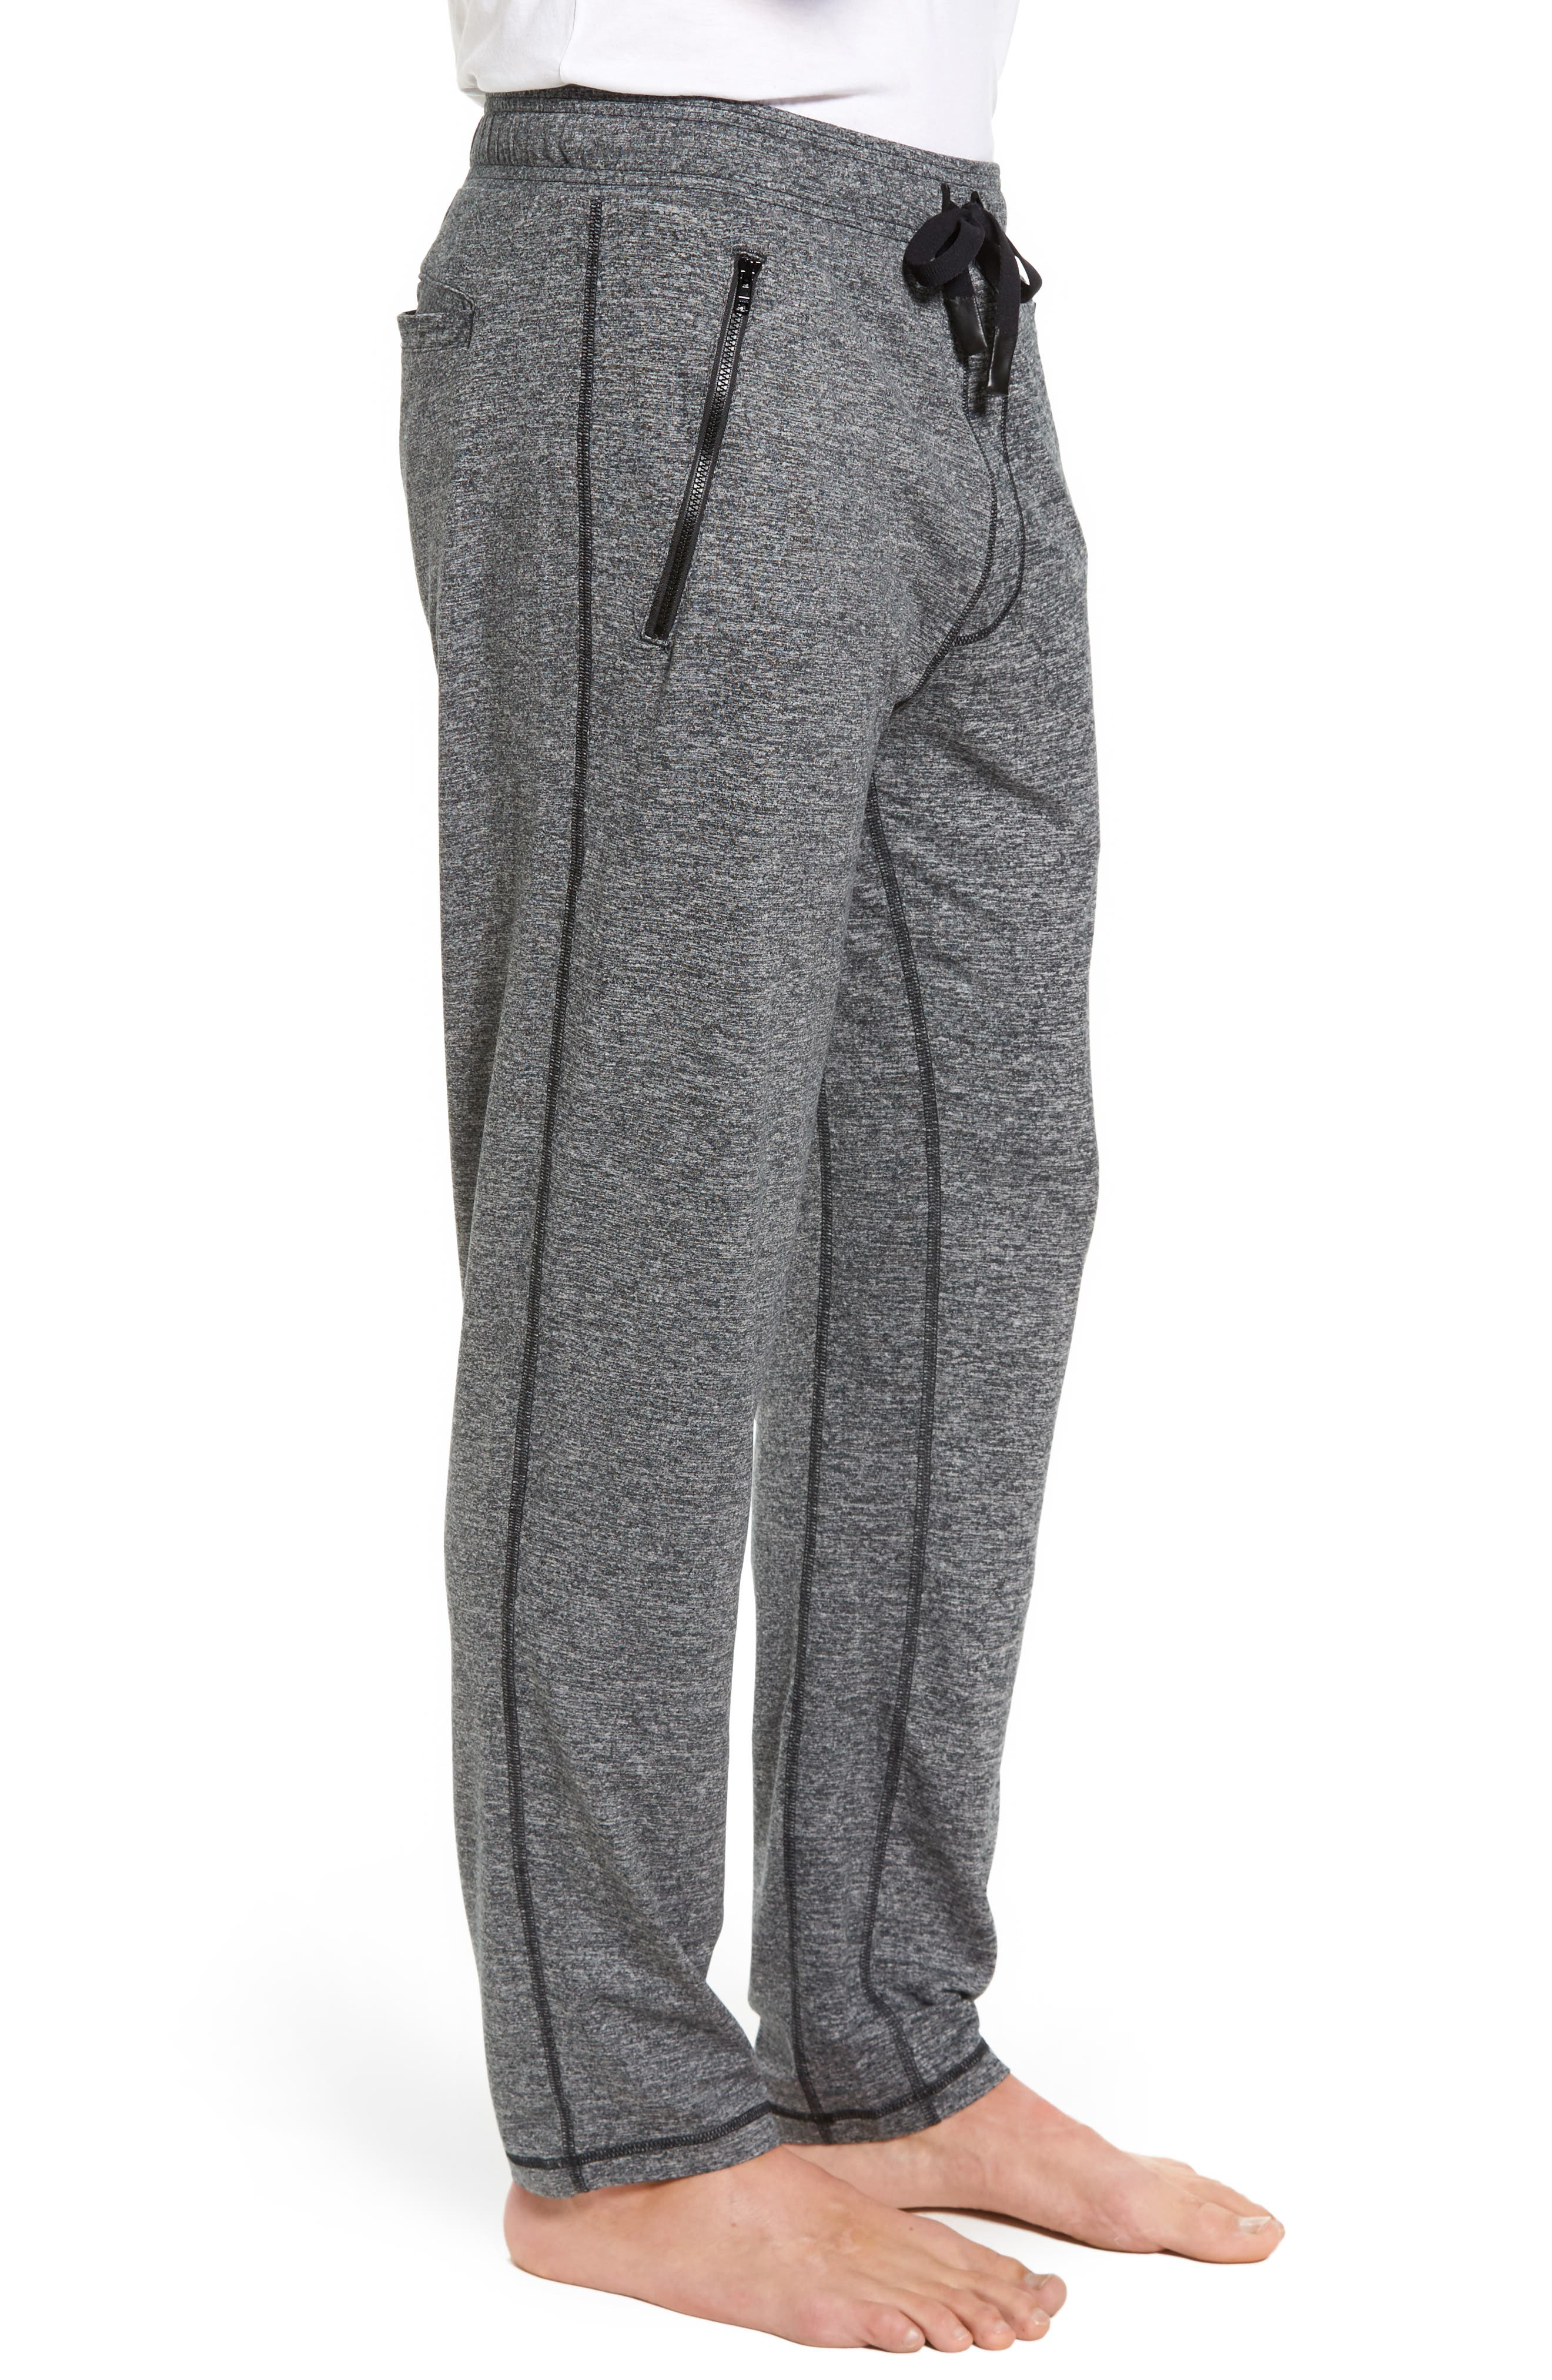 Renew Relaxed Lounge Pants,                             Alternate thumbnail 3, color,                             Grey Marl